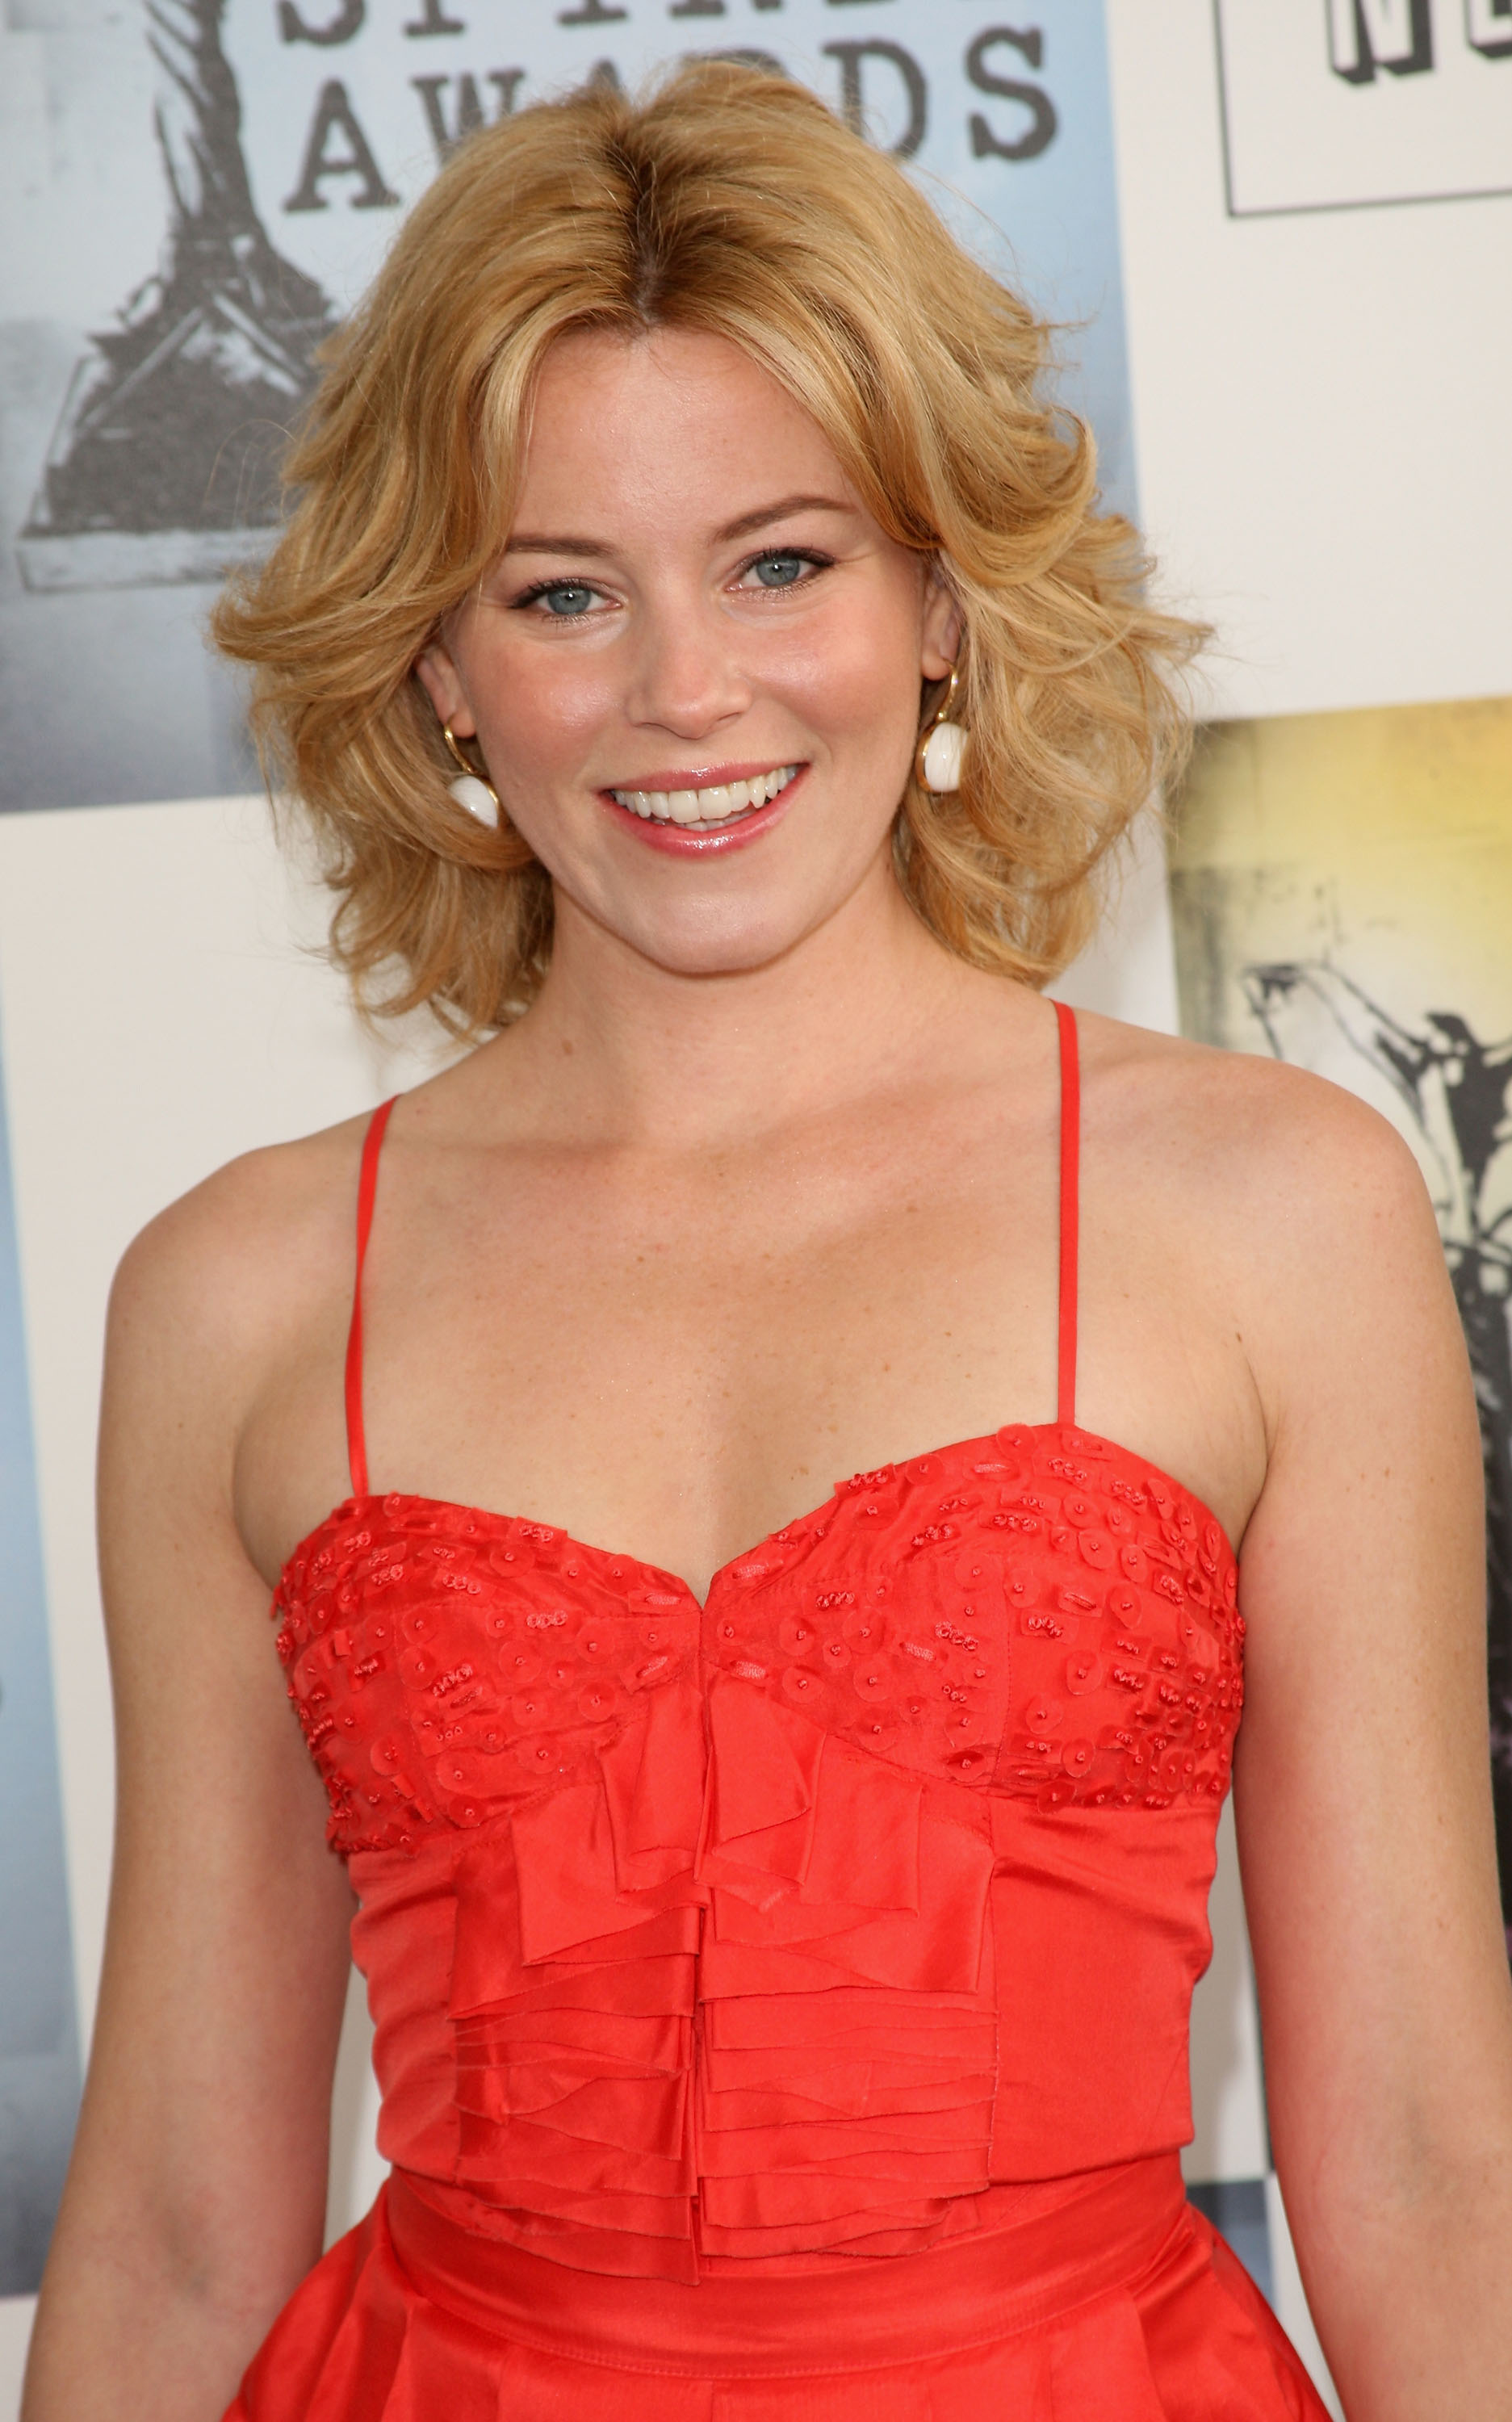 Elizabeth Banks Height Weight Age Bra Size Affairs Body Stats